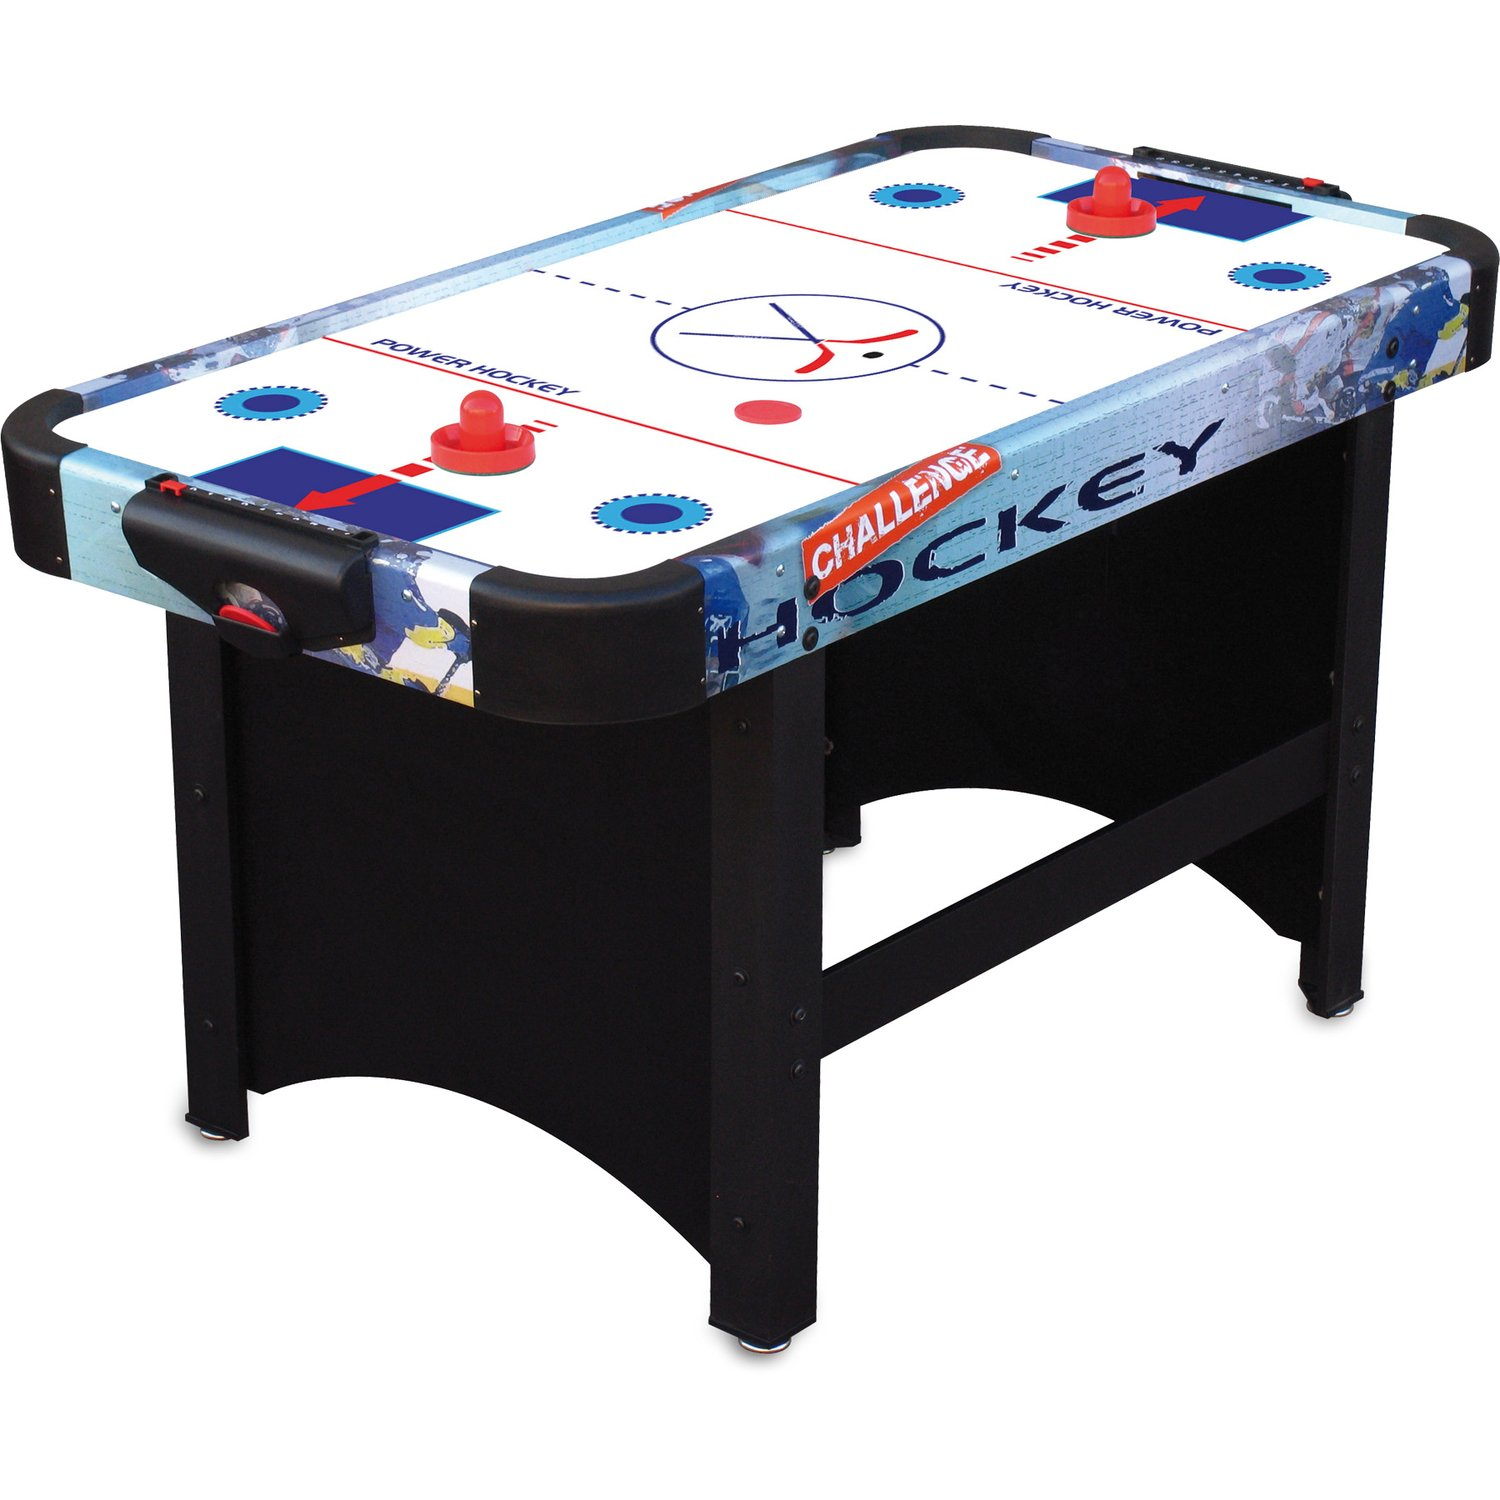 Small Foot-Air-Hockey Profi Juegos de Mesa, Multicolor (1): Amazon ...